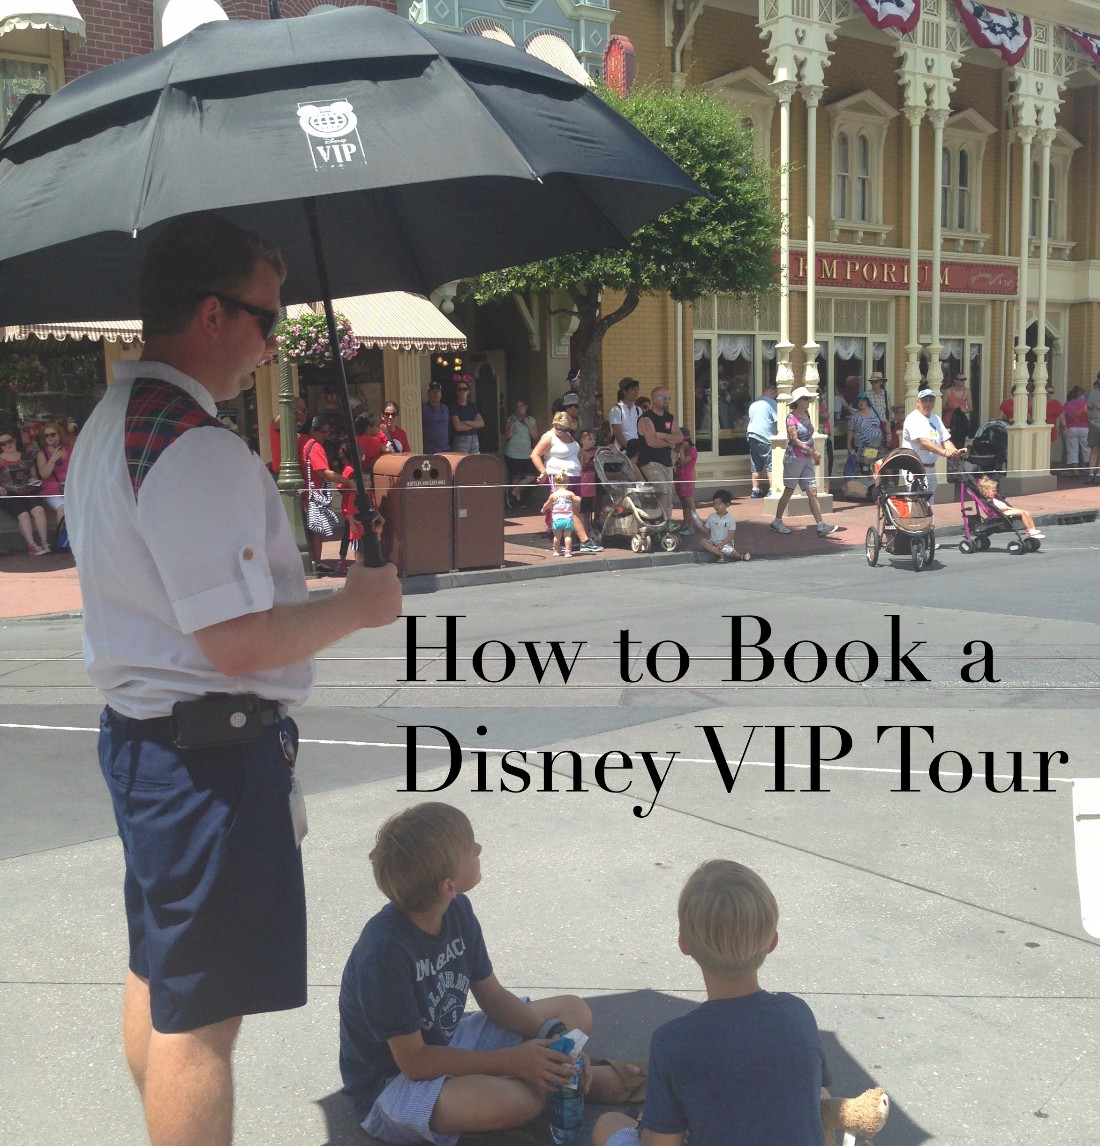 5 Great Reasons to Book a Disney VIP Tour